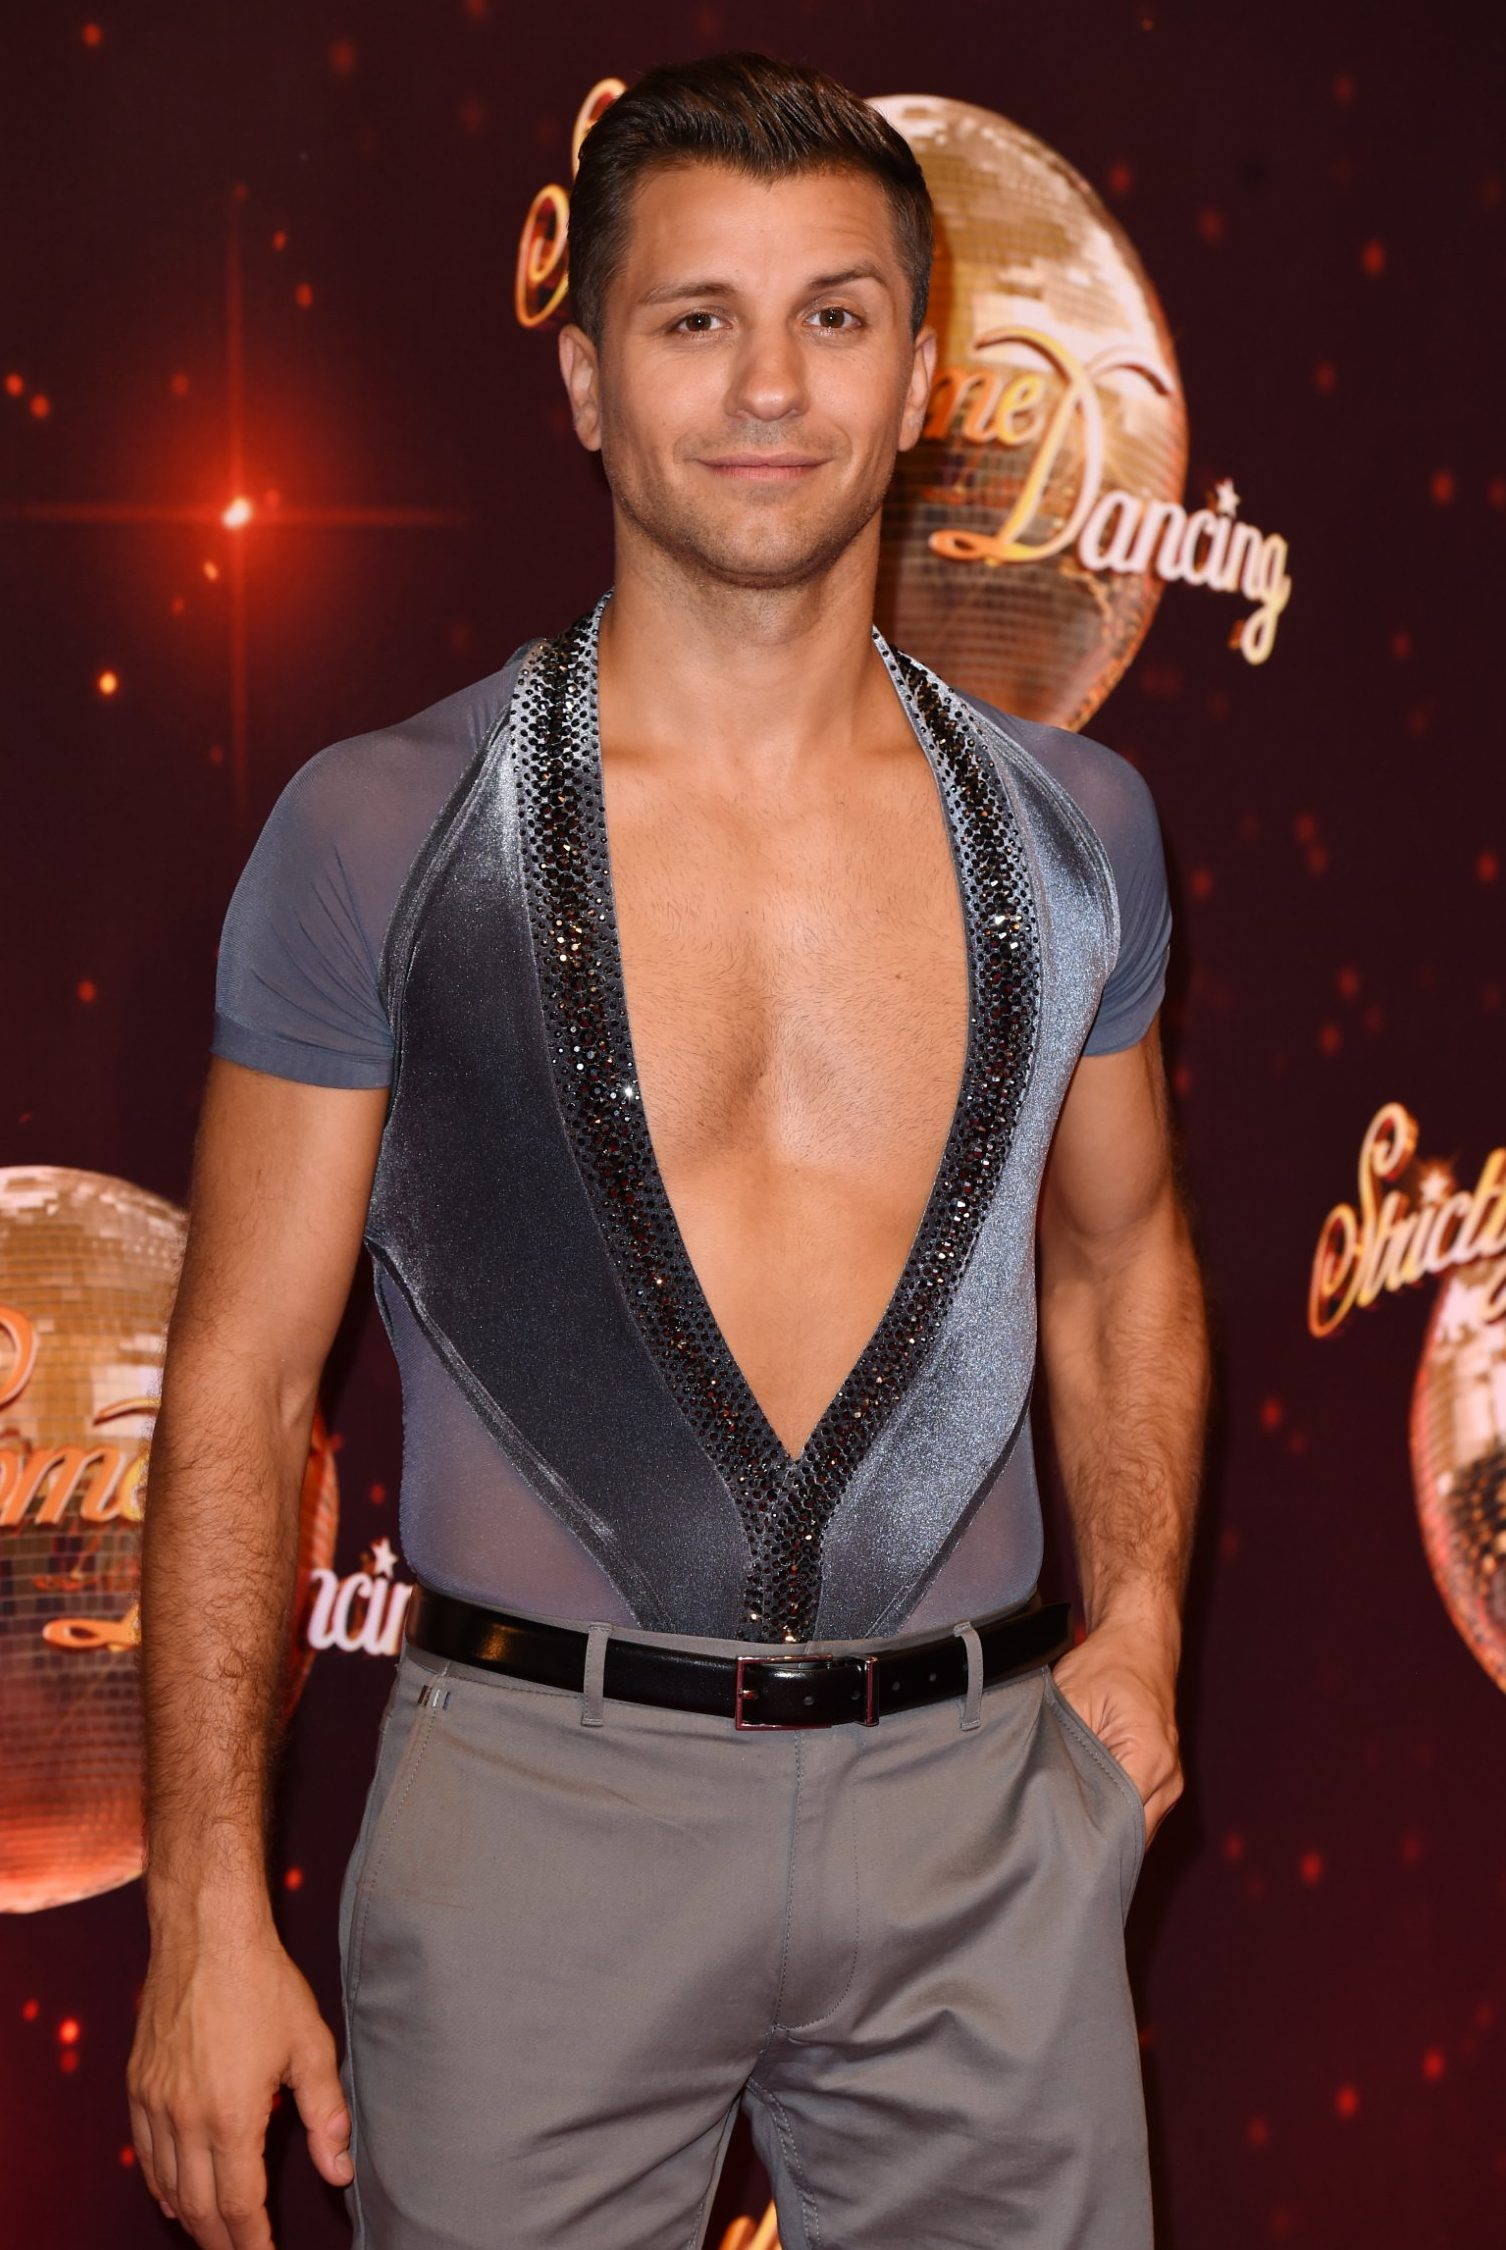 Mandatory Credit: Photo by David Fisher/REX/Shutterstock (5848946fk) Pasha Kovalev 'Strictly Come Dancing' launch, Elstree Studios, Hertfordshire, UK - 30 Aug 2016